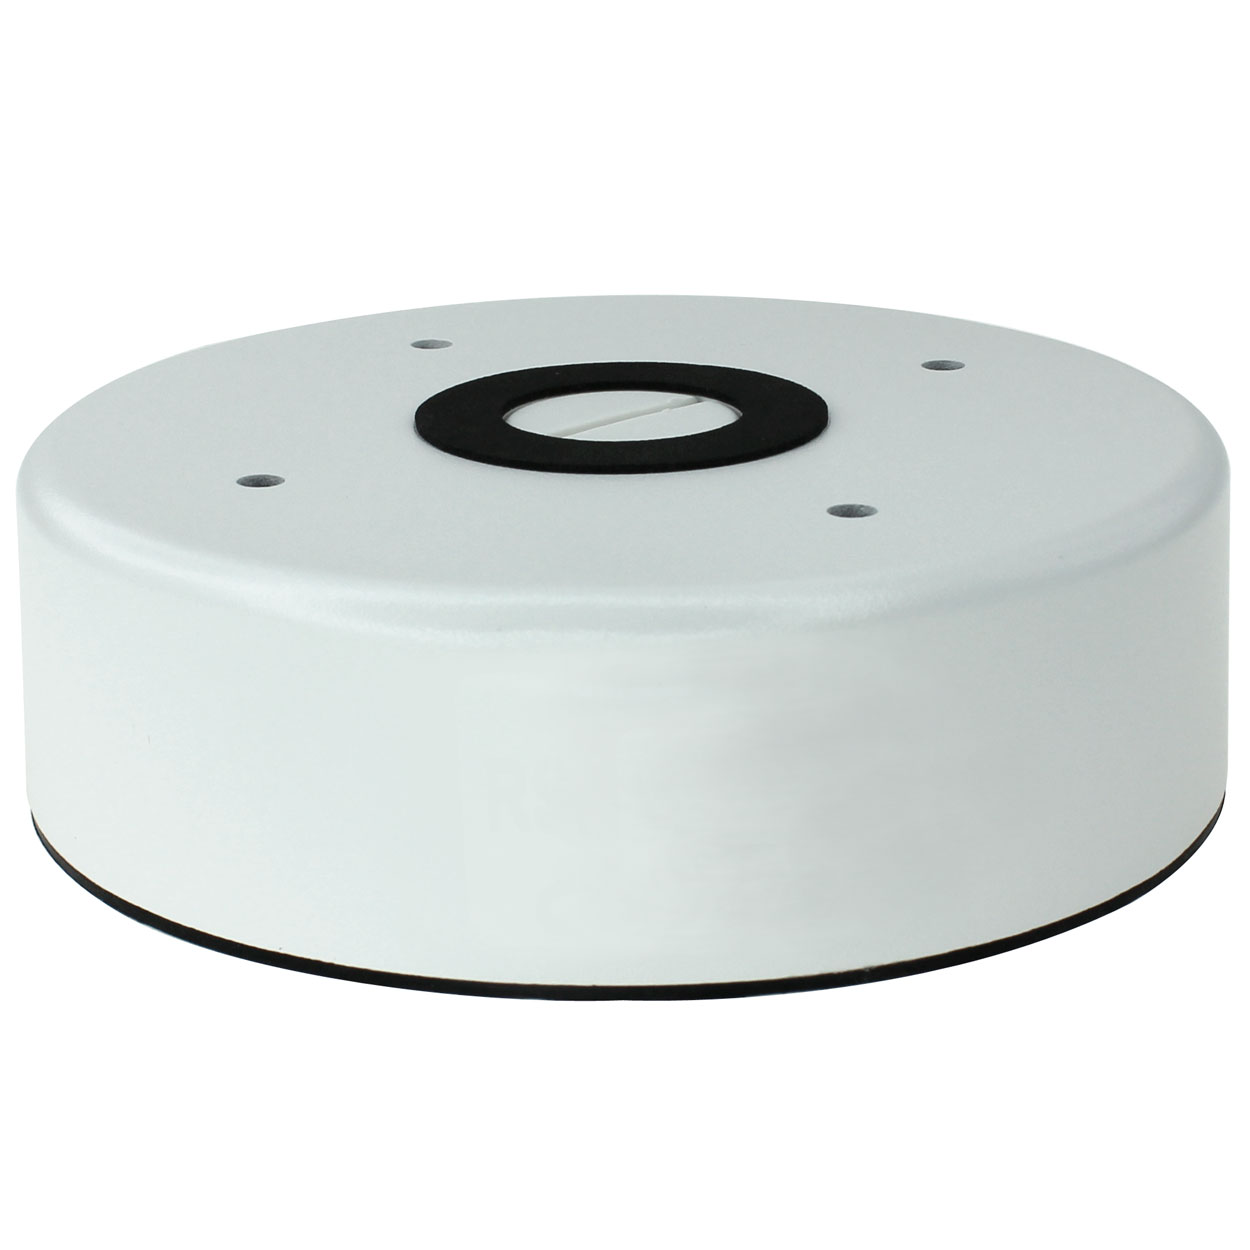 Junction Box for Vandal Proof IP Camera (IP-CAM-4692H3F) 5.8 x 1.8 inches - White